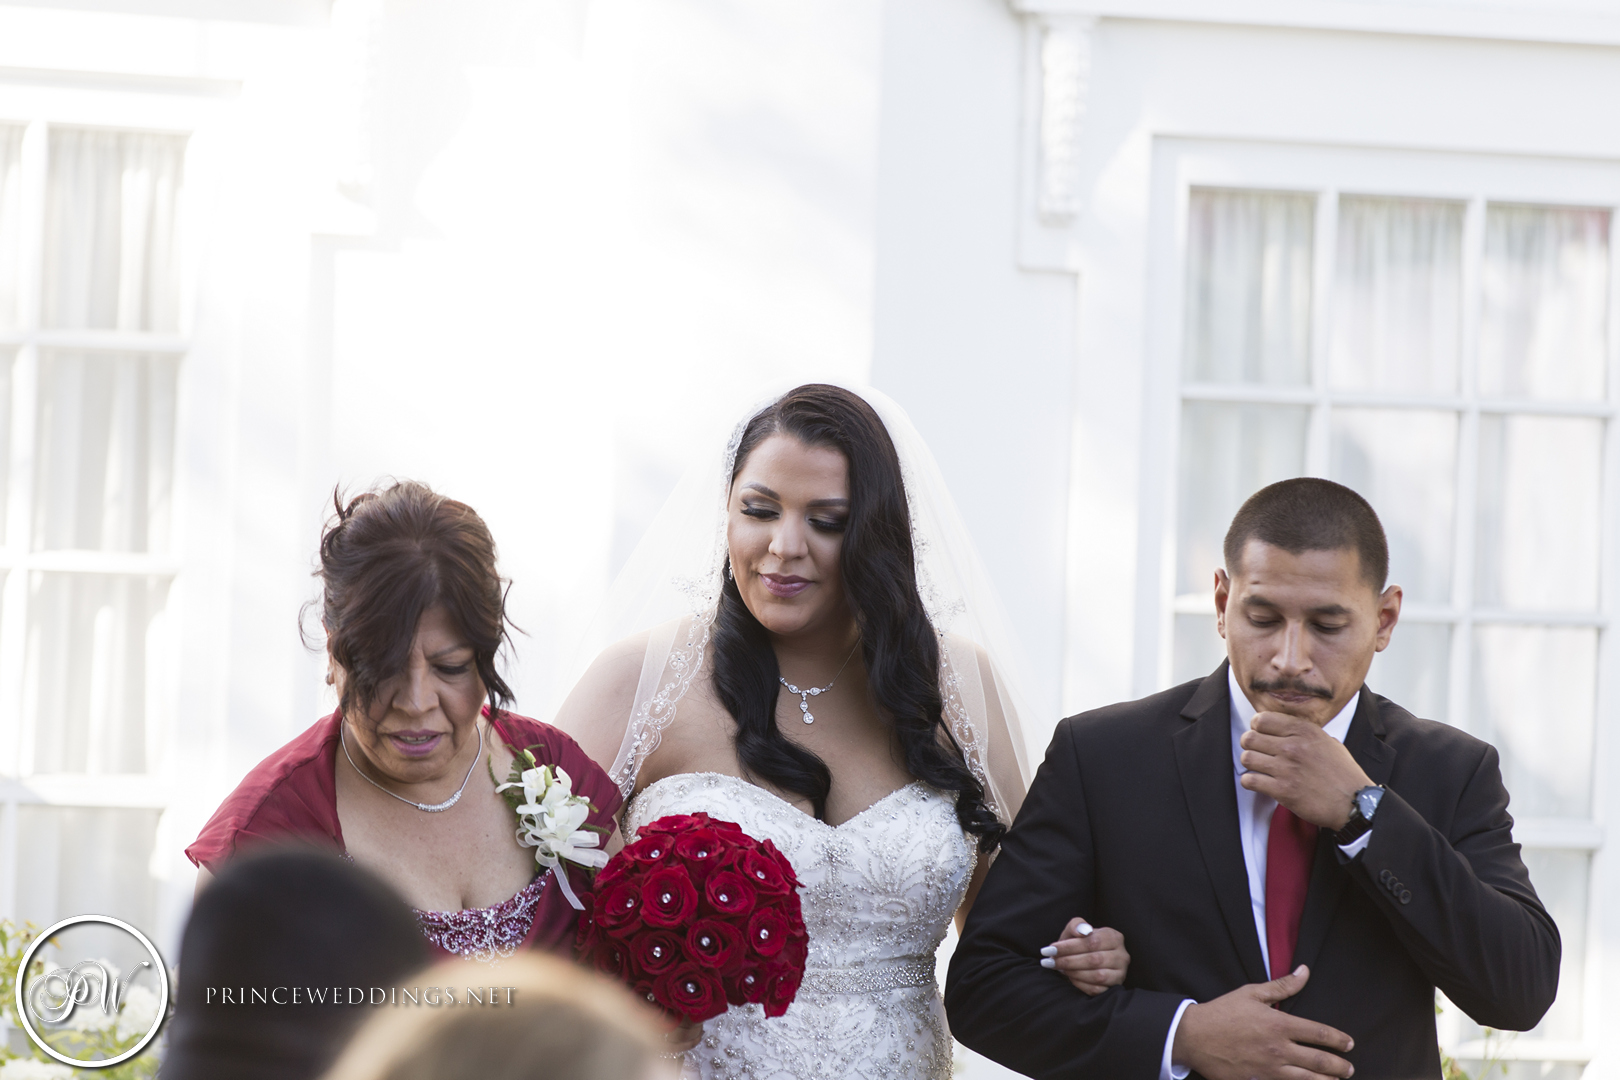 WhiteHouse_WeddingPhoto037.jpg